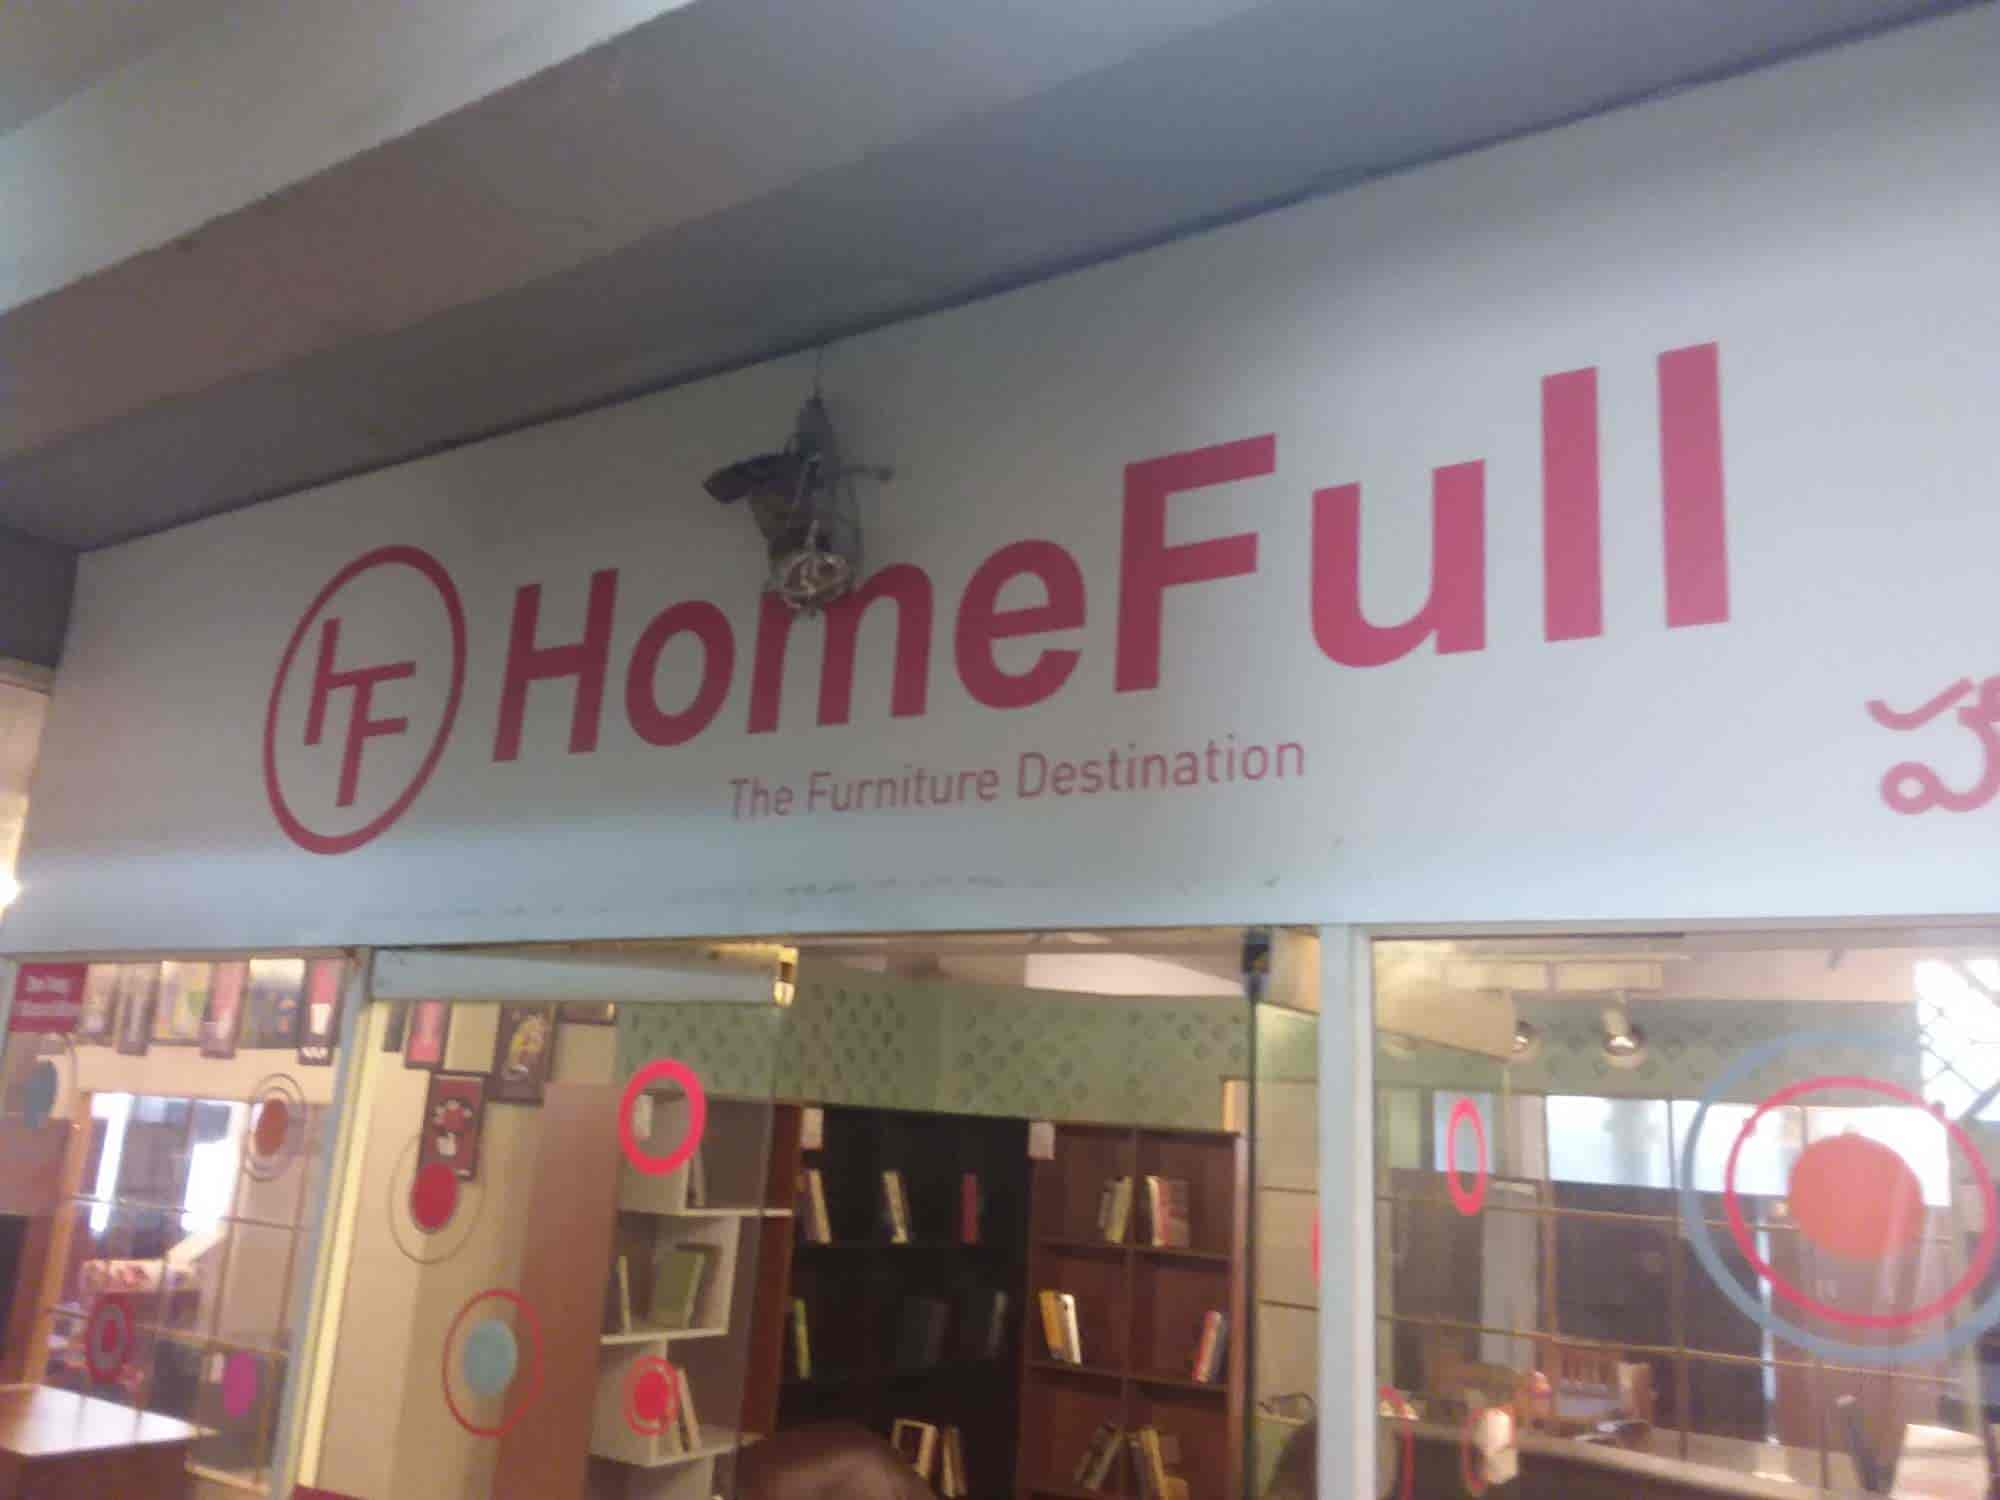 Home Full Furniture Toli Chowki Furniture Dealers In Hyderabad Justdial